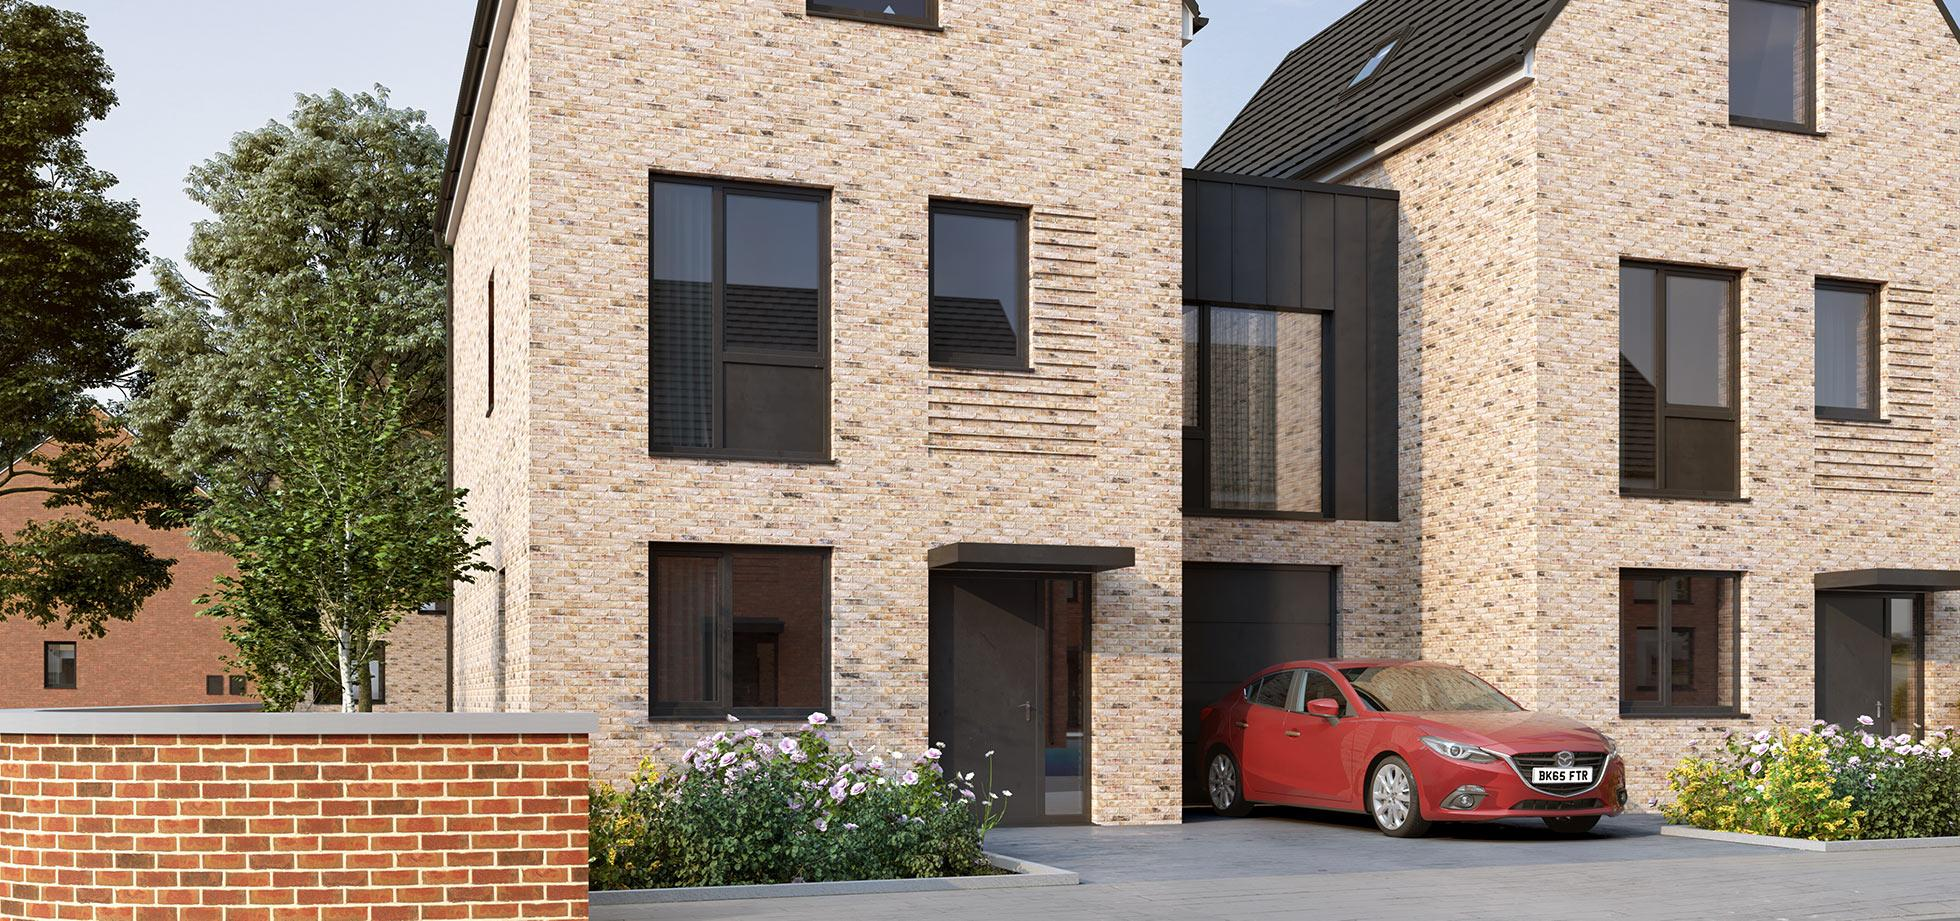 An image of a town house from the Shape Homes York housing development